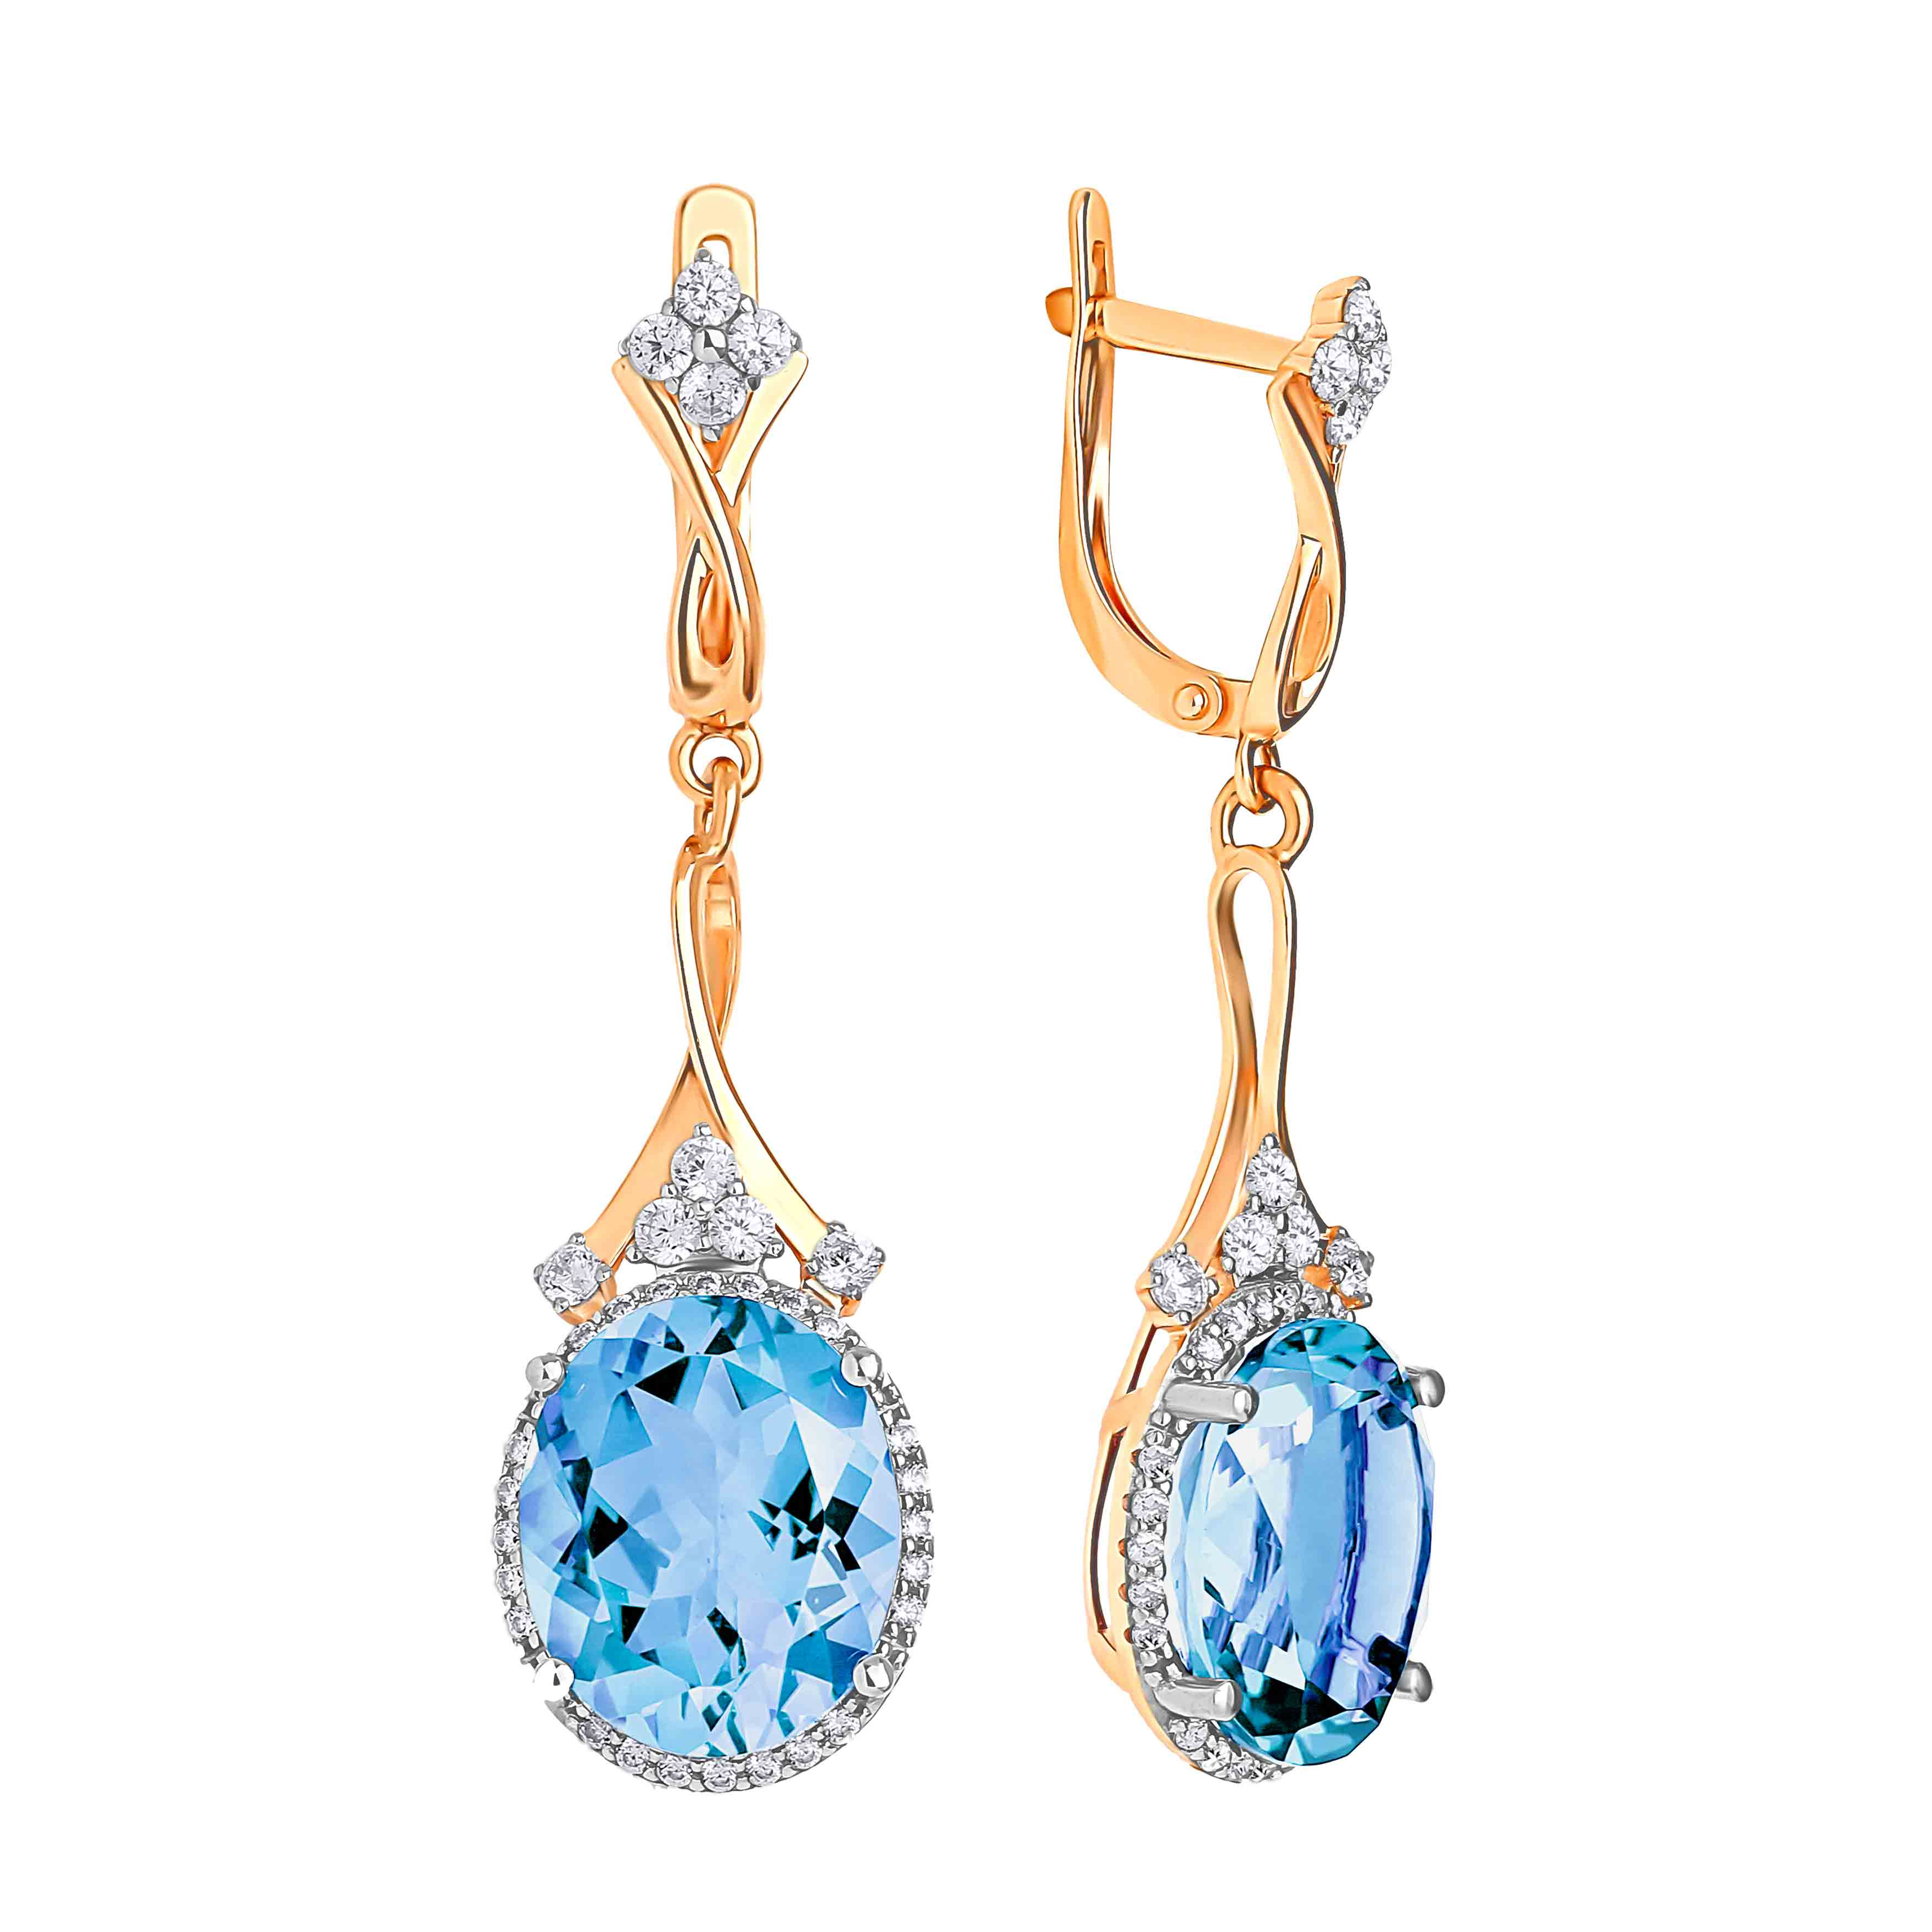 Oval-Shaped Blue Topaz Cocktail Earrings